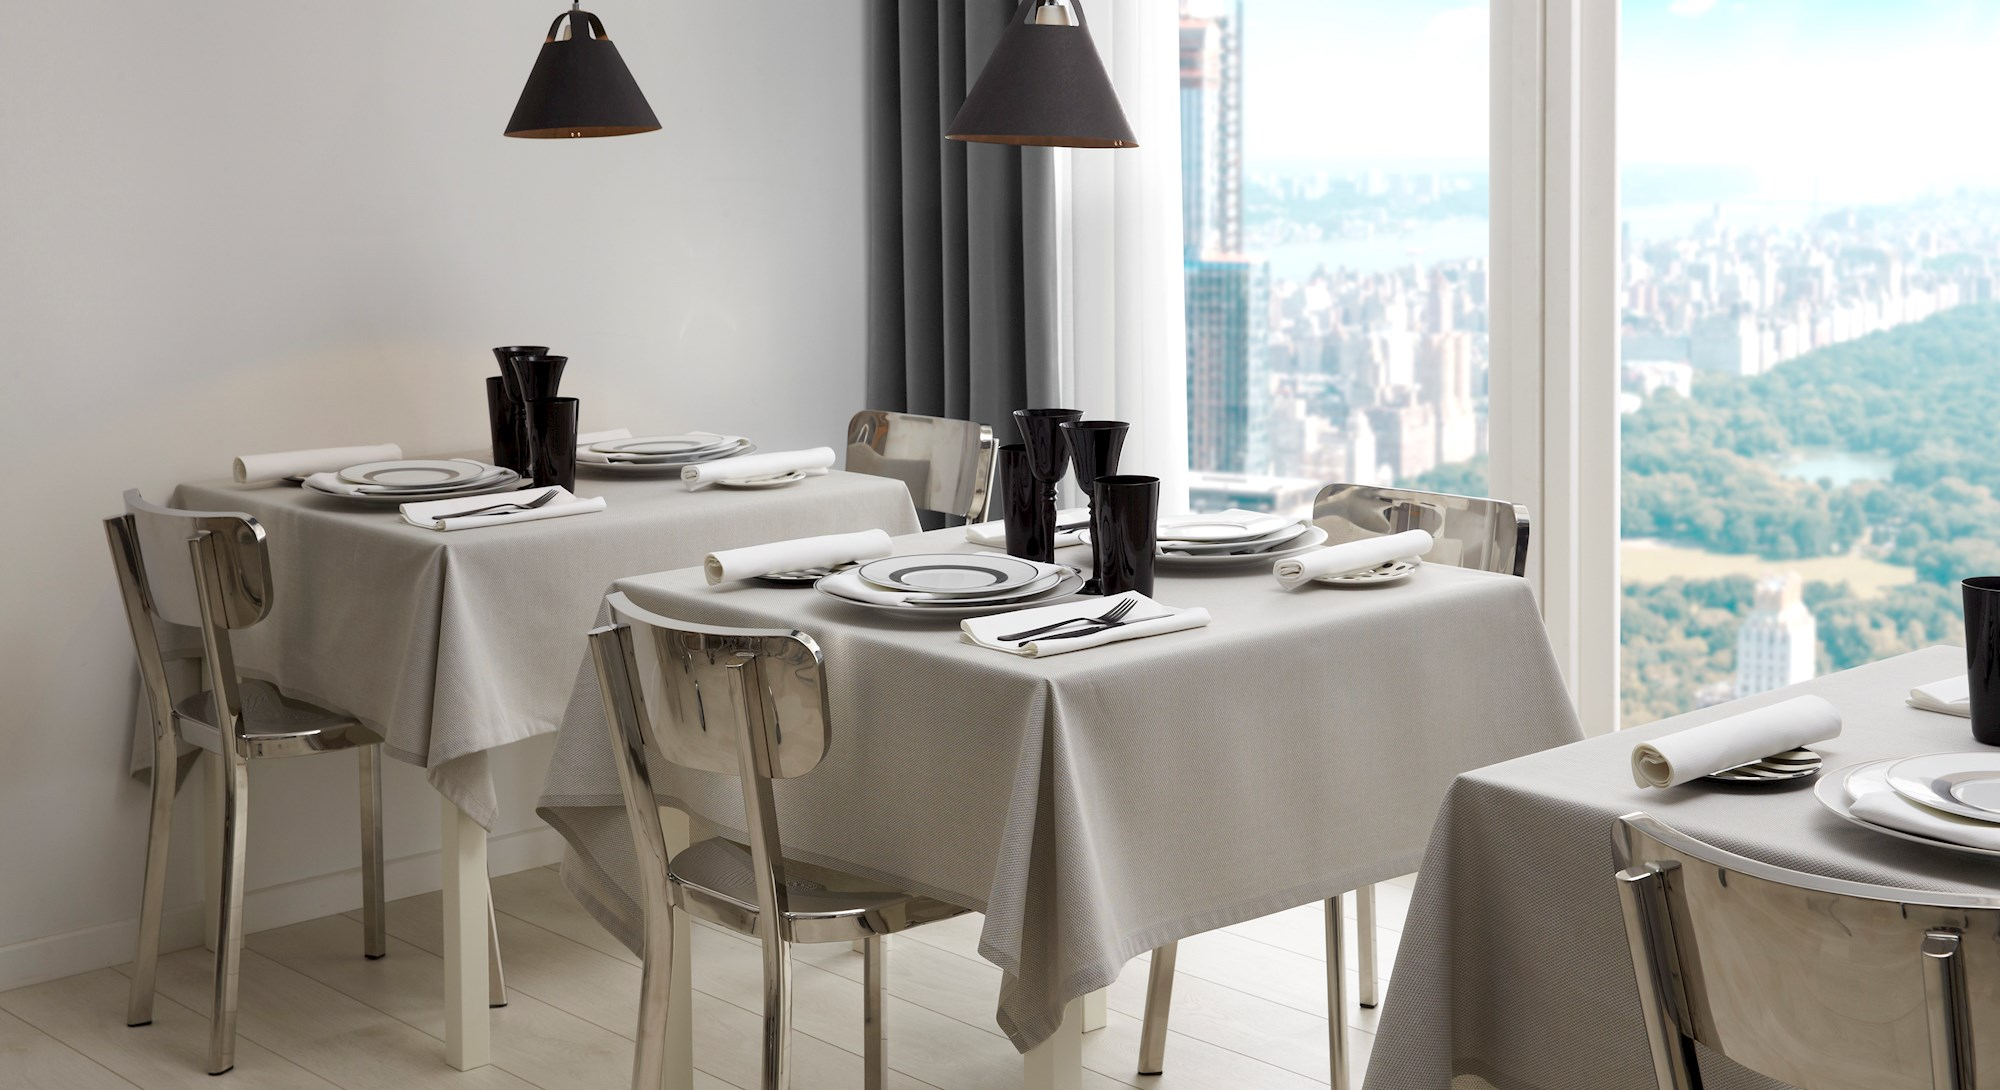 Table Chair Covers Napkins